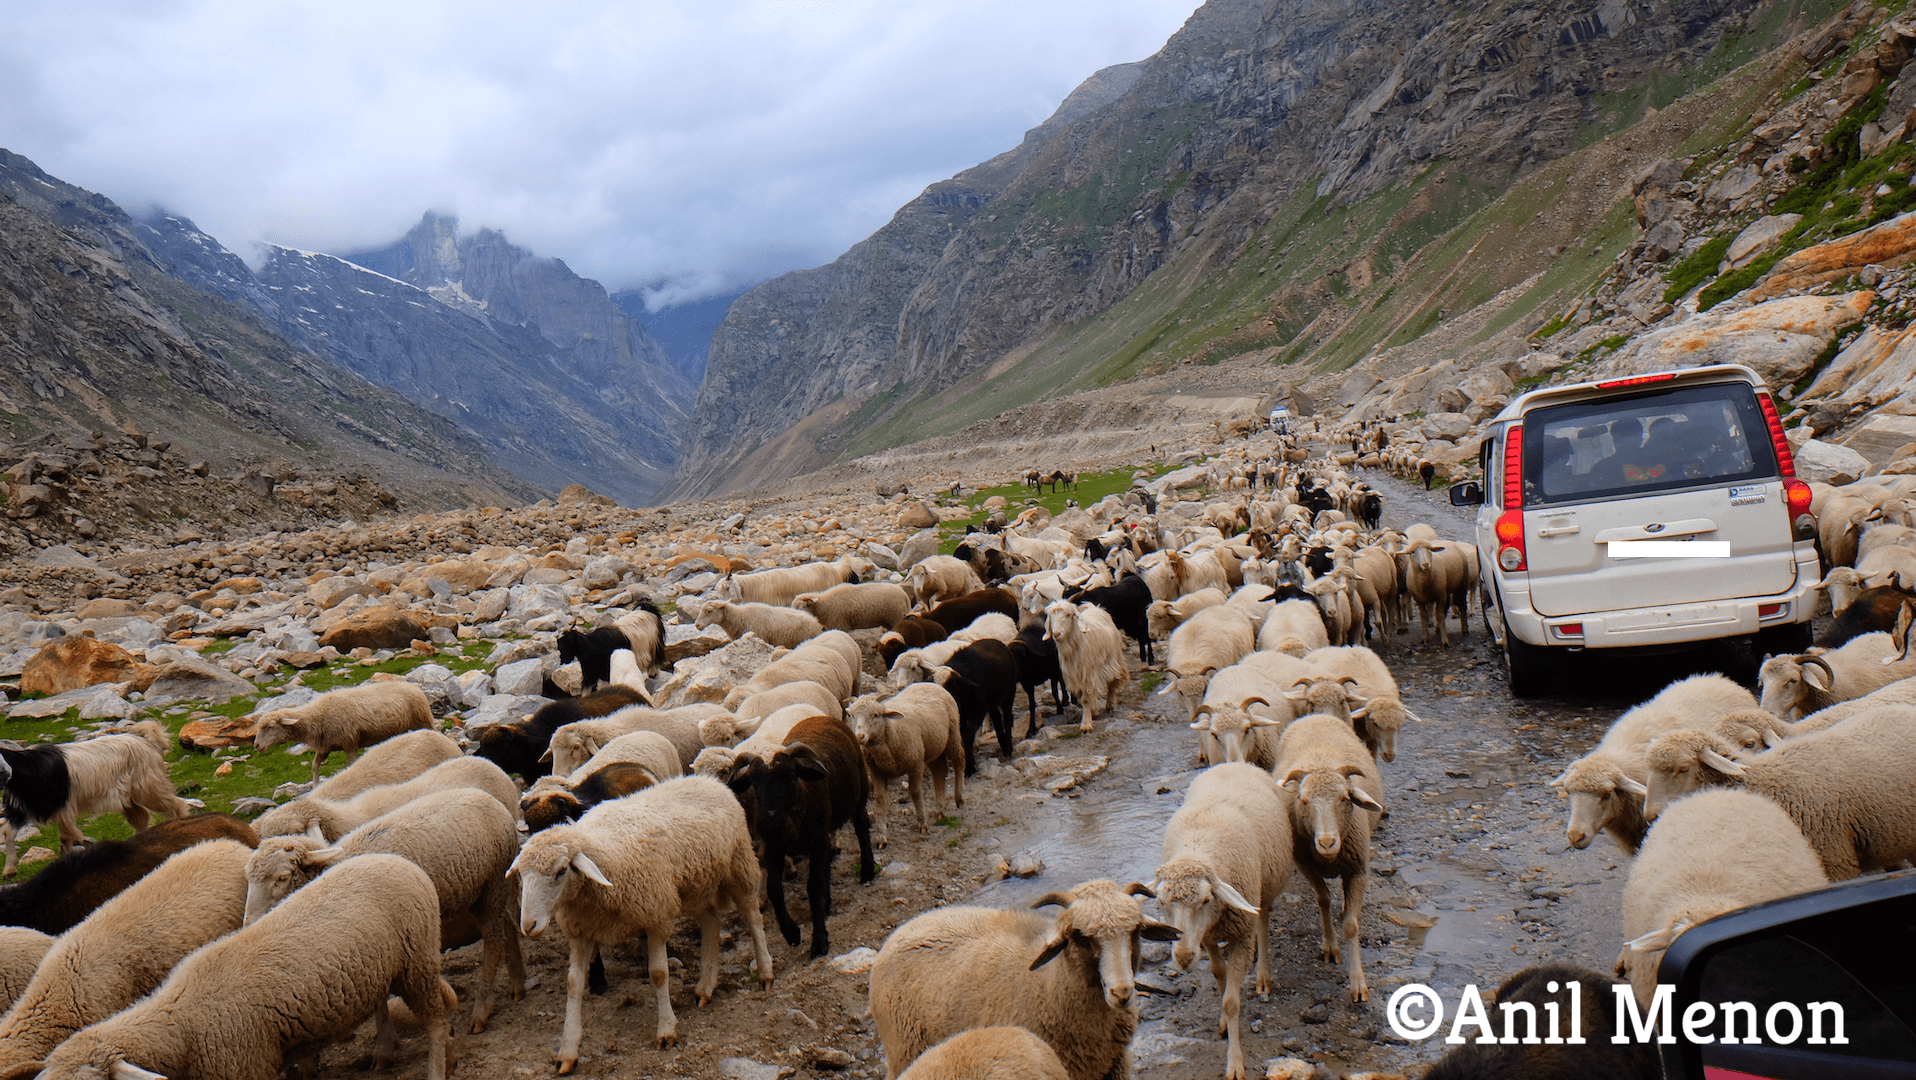 Sheep obstructing cars in the middle of nowhere in the Himalayas in India